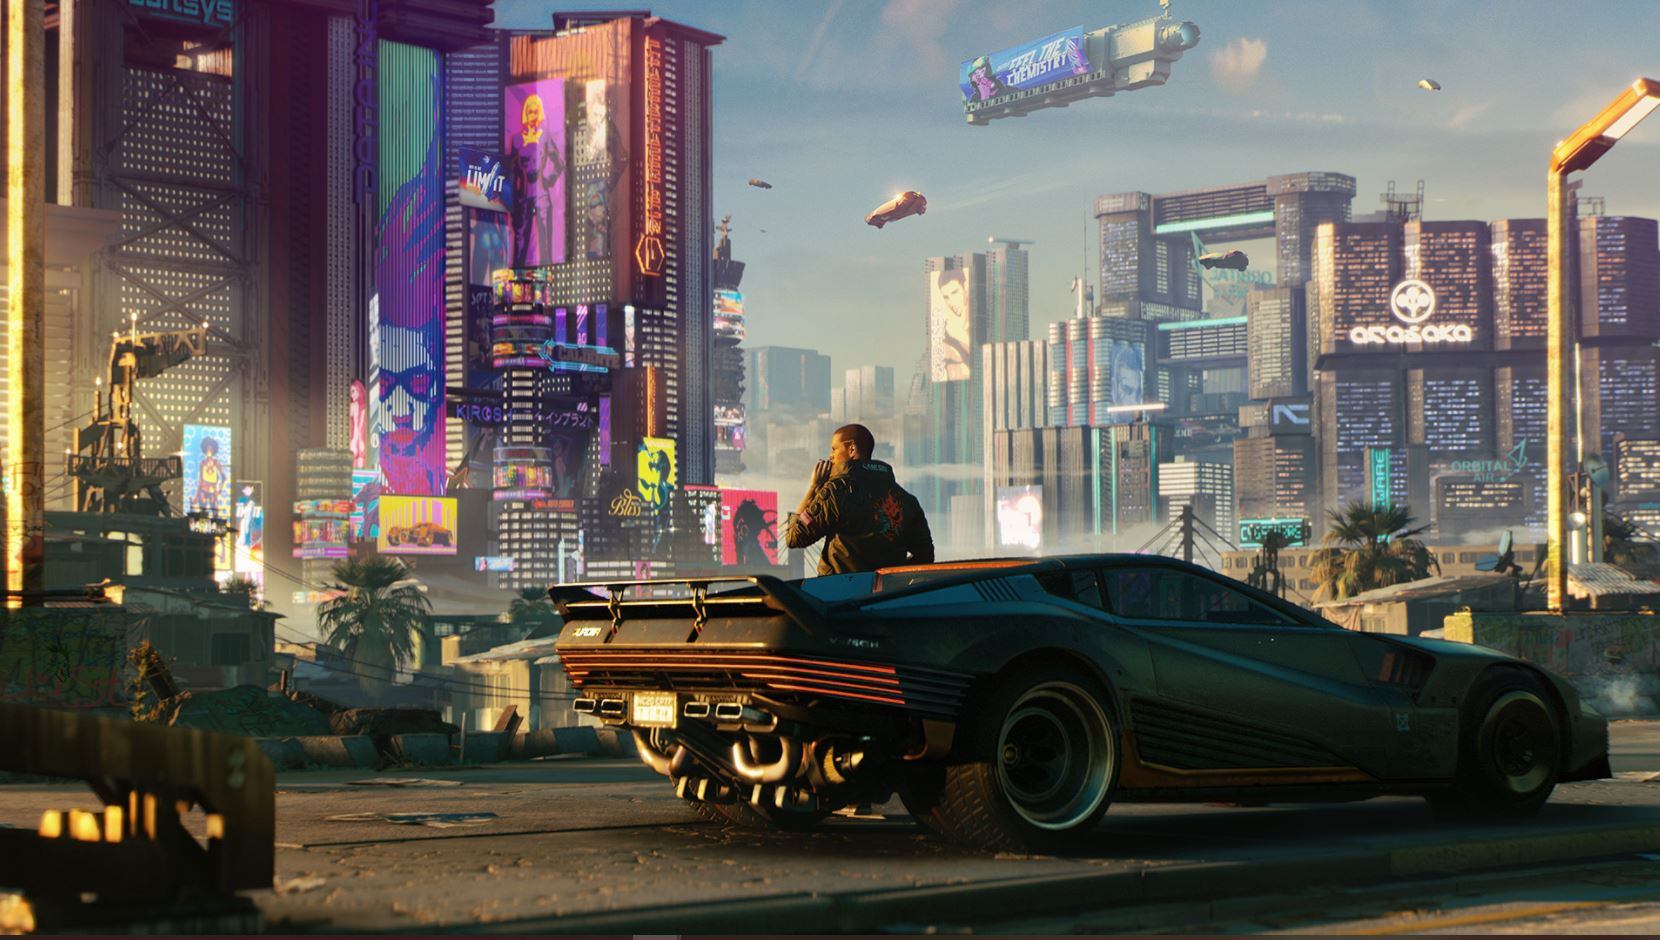 cyberpunk-2077-update-1-23-patch-notes-provide-more-fixes-ahead-of-playstation-store-relaunch